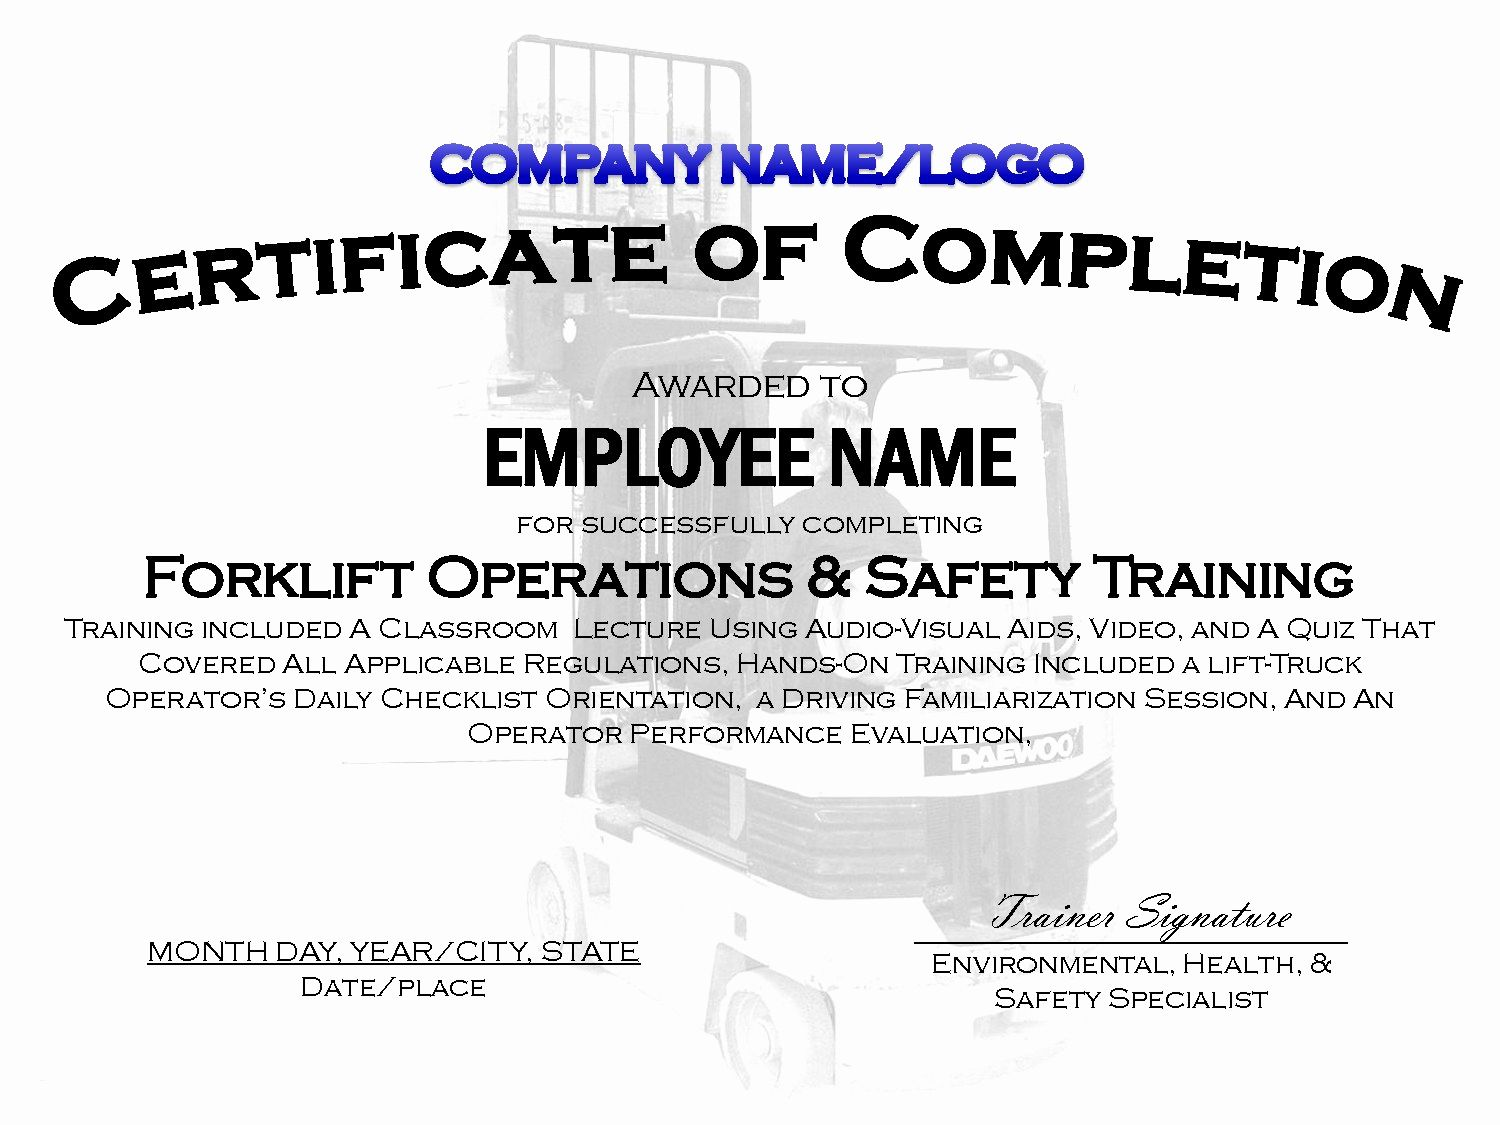 Forklift Training Certificate Template Beautiful Forklift Certificate Template Free Training Certificate Certificate Templates Forklift Training